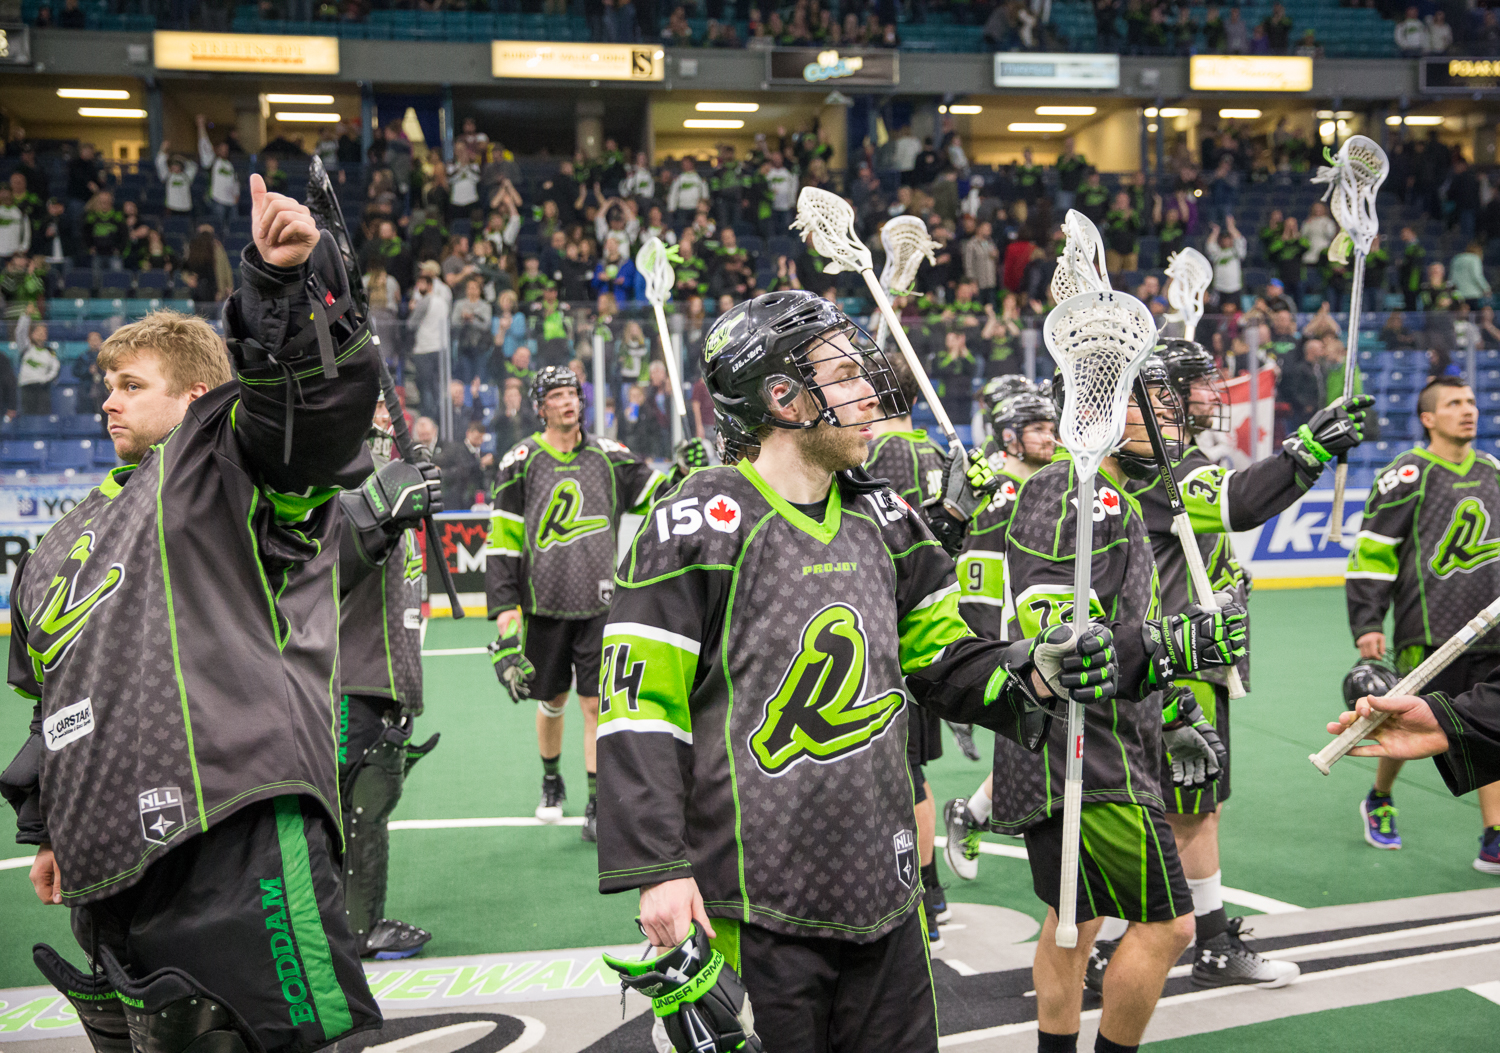 The Rush players saluted their supporters who cheered loudly for their favourite team in the NLL despite their first home loss of the season.